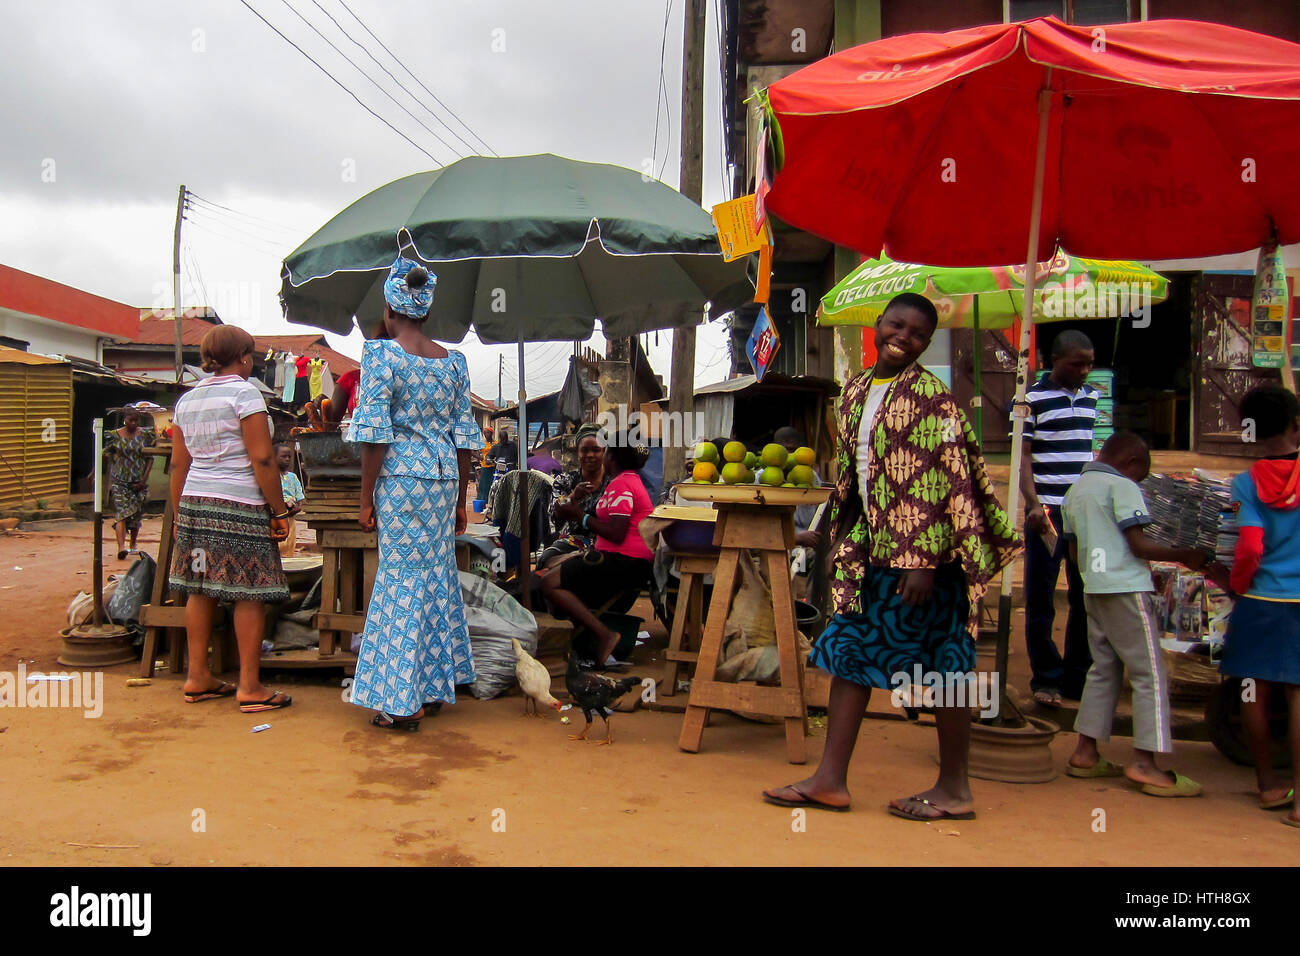 People selling different goods in the street in the city of Lagos, the largest city in Nigeria and the African continent - Stock Image